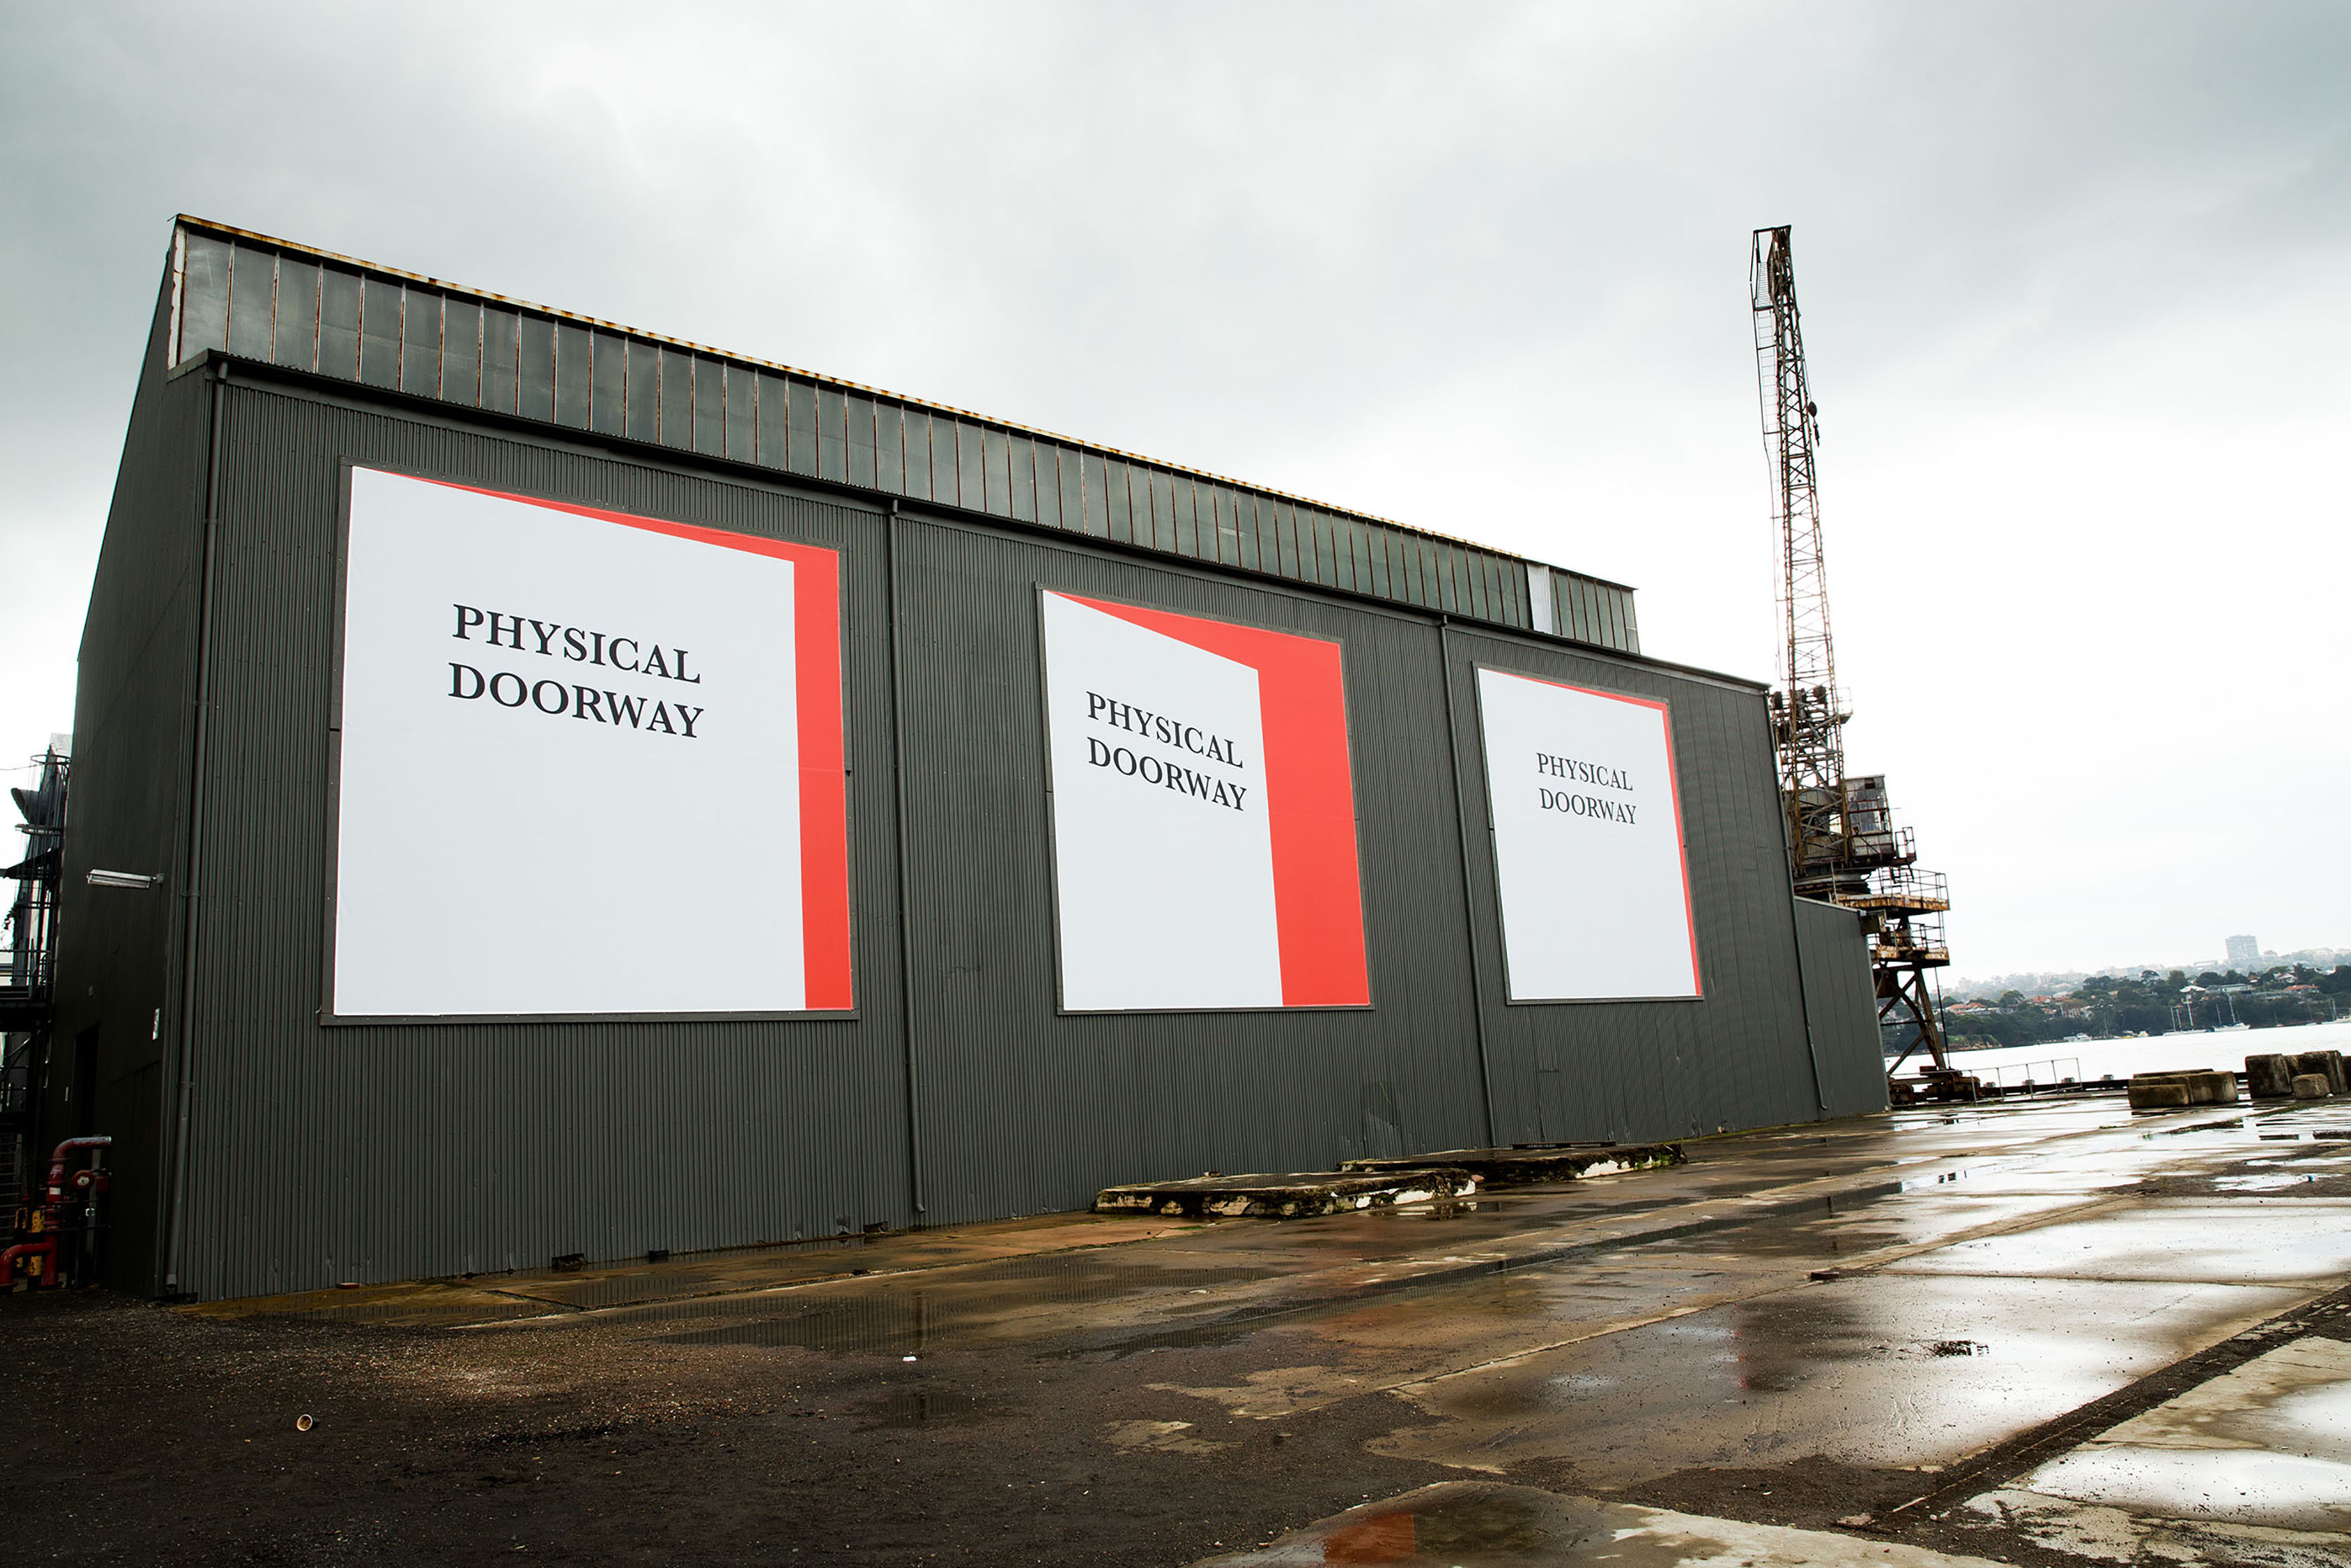 Agatha Gothe-Snape, 'Physical Doorway (Three Ways)', 2016, digital print on mesh PVC banner, three parts, 700 x 700cm each, 20th Biennale of Sydney, curated by Stephanie Rosenthal, Cockatoo Island, Sydney. Photo: Ben Symons. Image courtesy the artist and The Commercial Gallery, Sydney